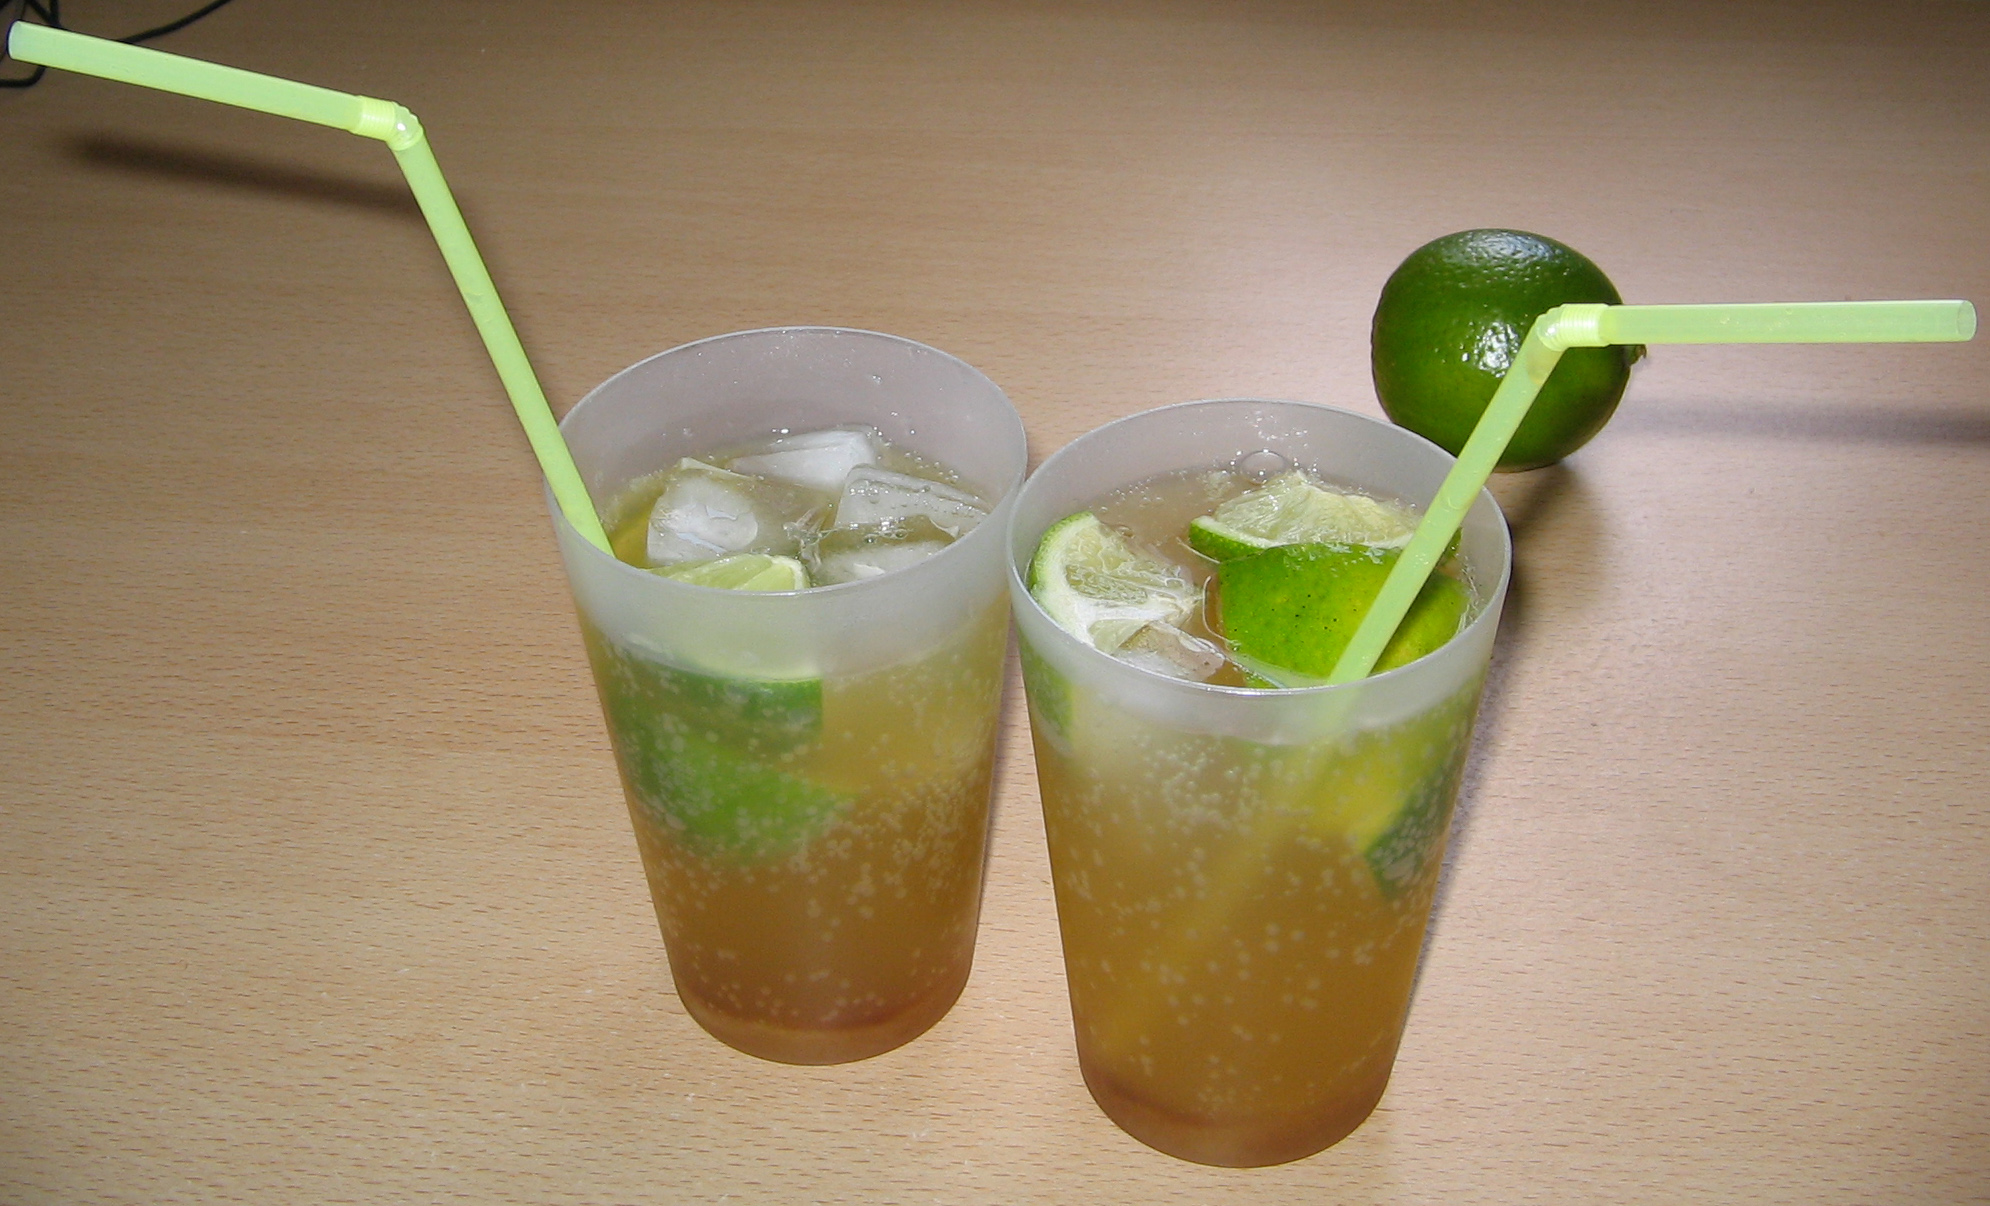 quite a refreshing drink: Ipanema | schrankmonster blog